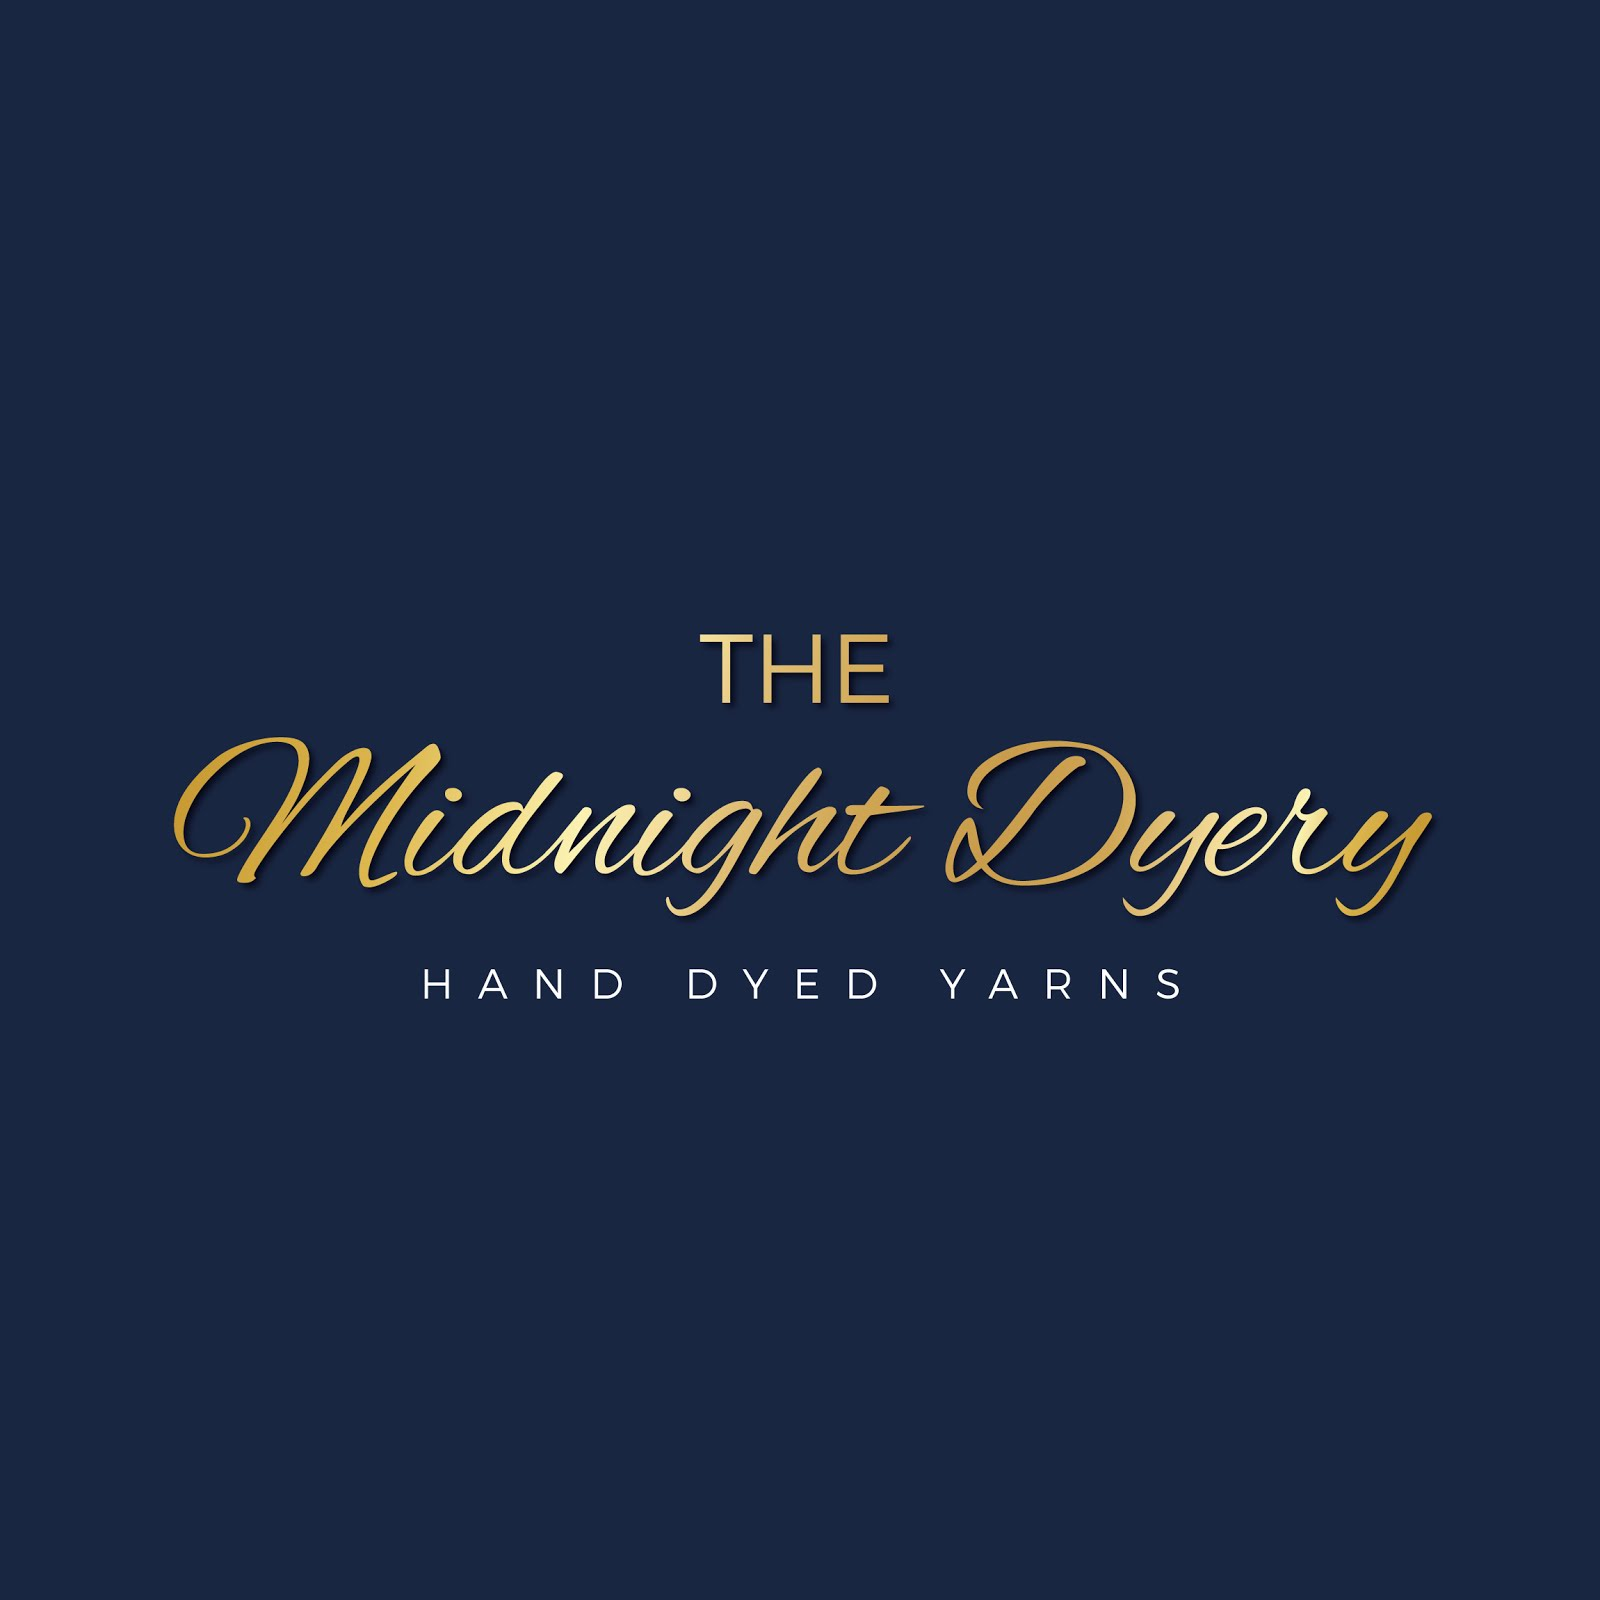 The Project Bag Blog and Midnight Dyery Store